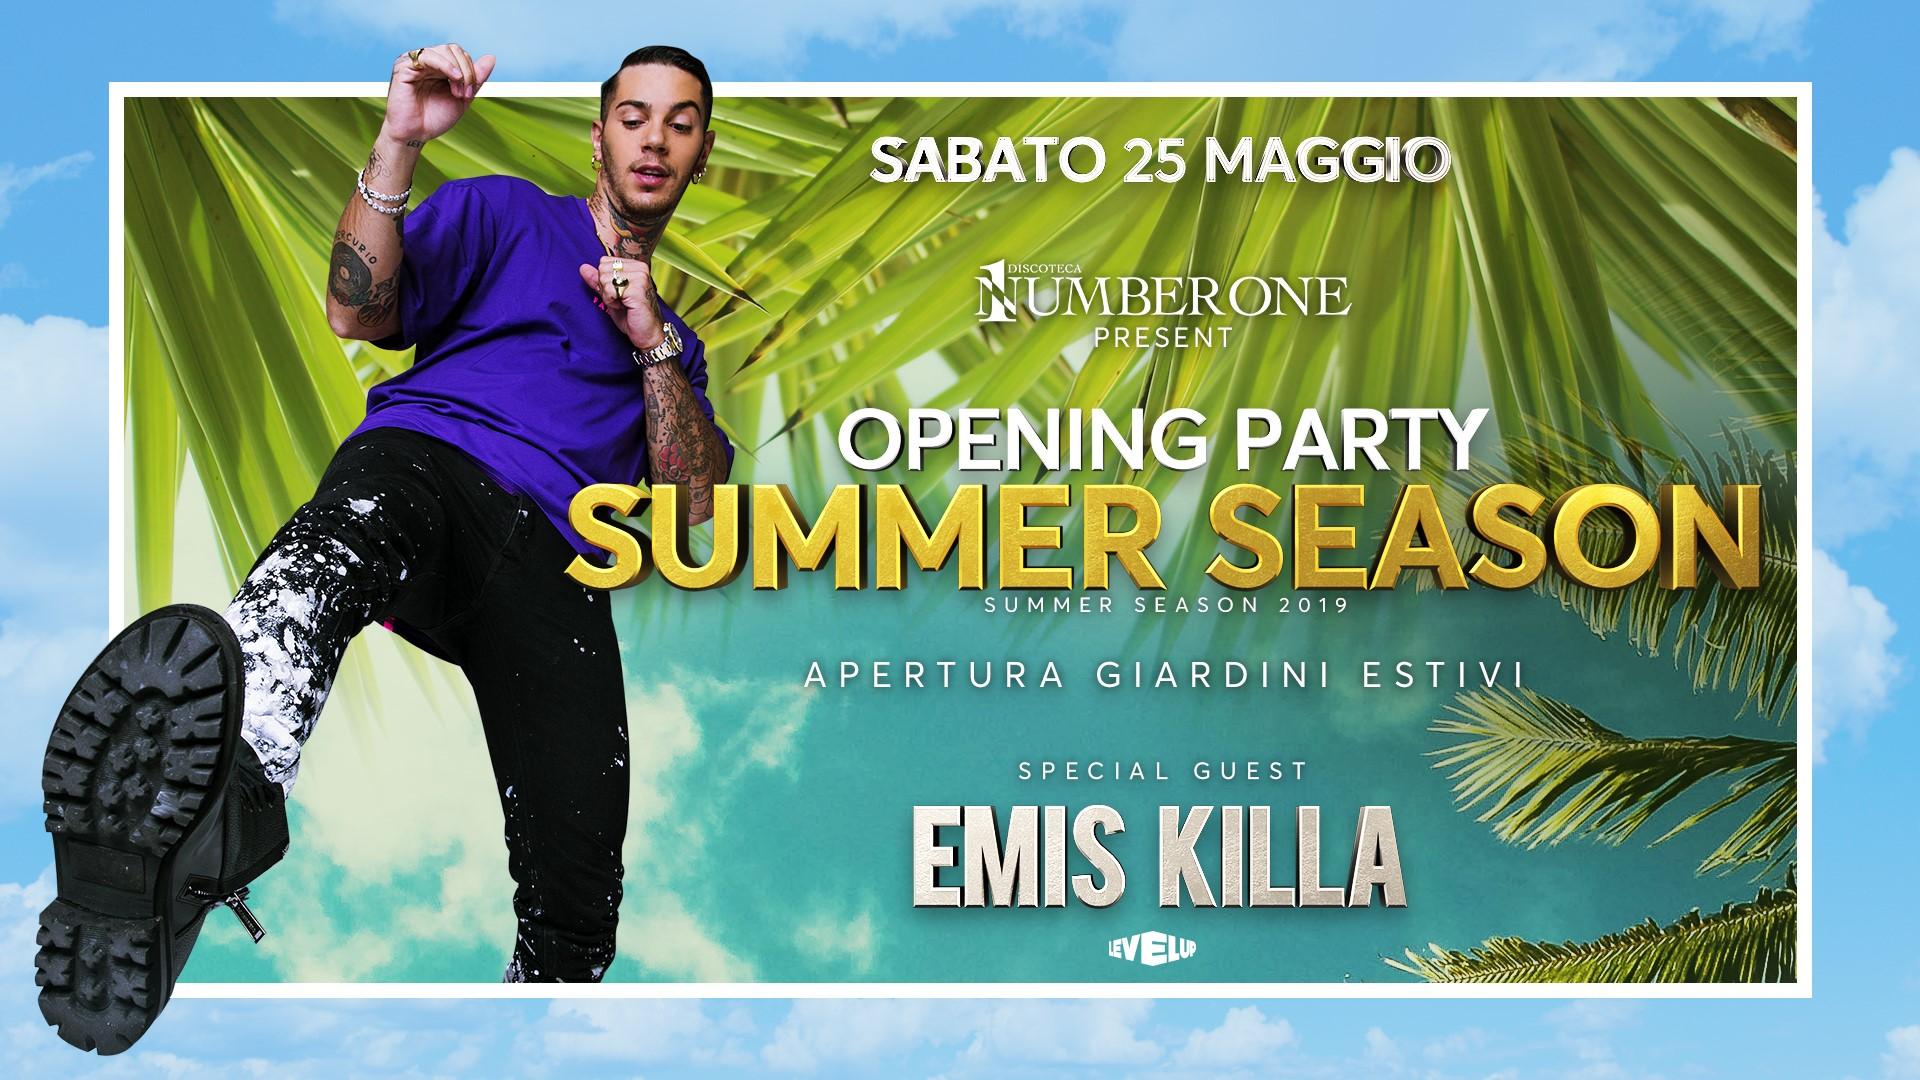 Opening Party Summer Season – EMIS KILLA